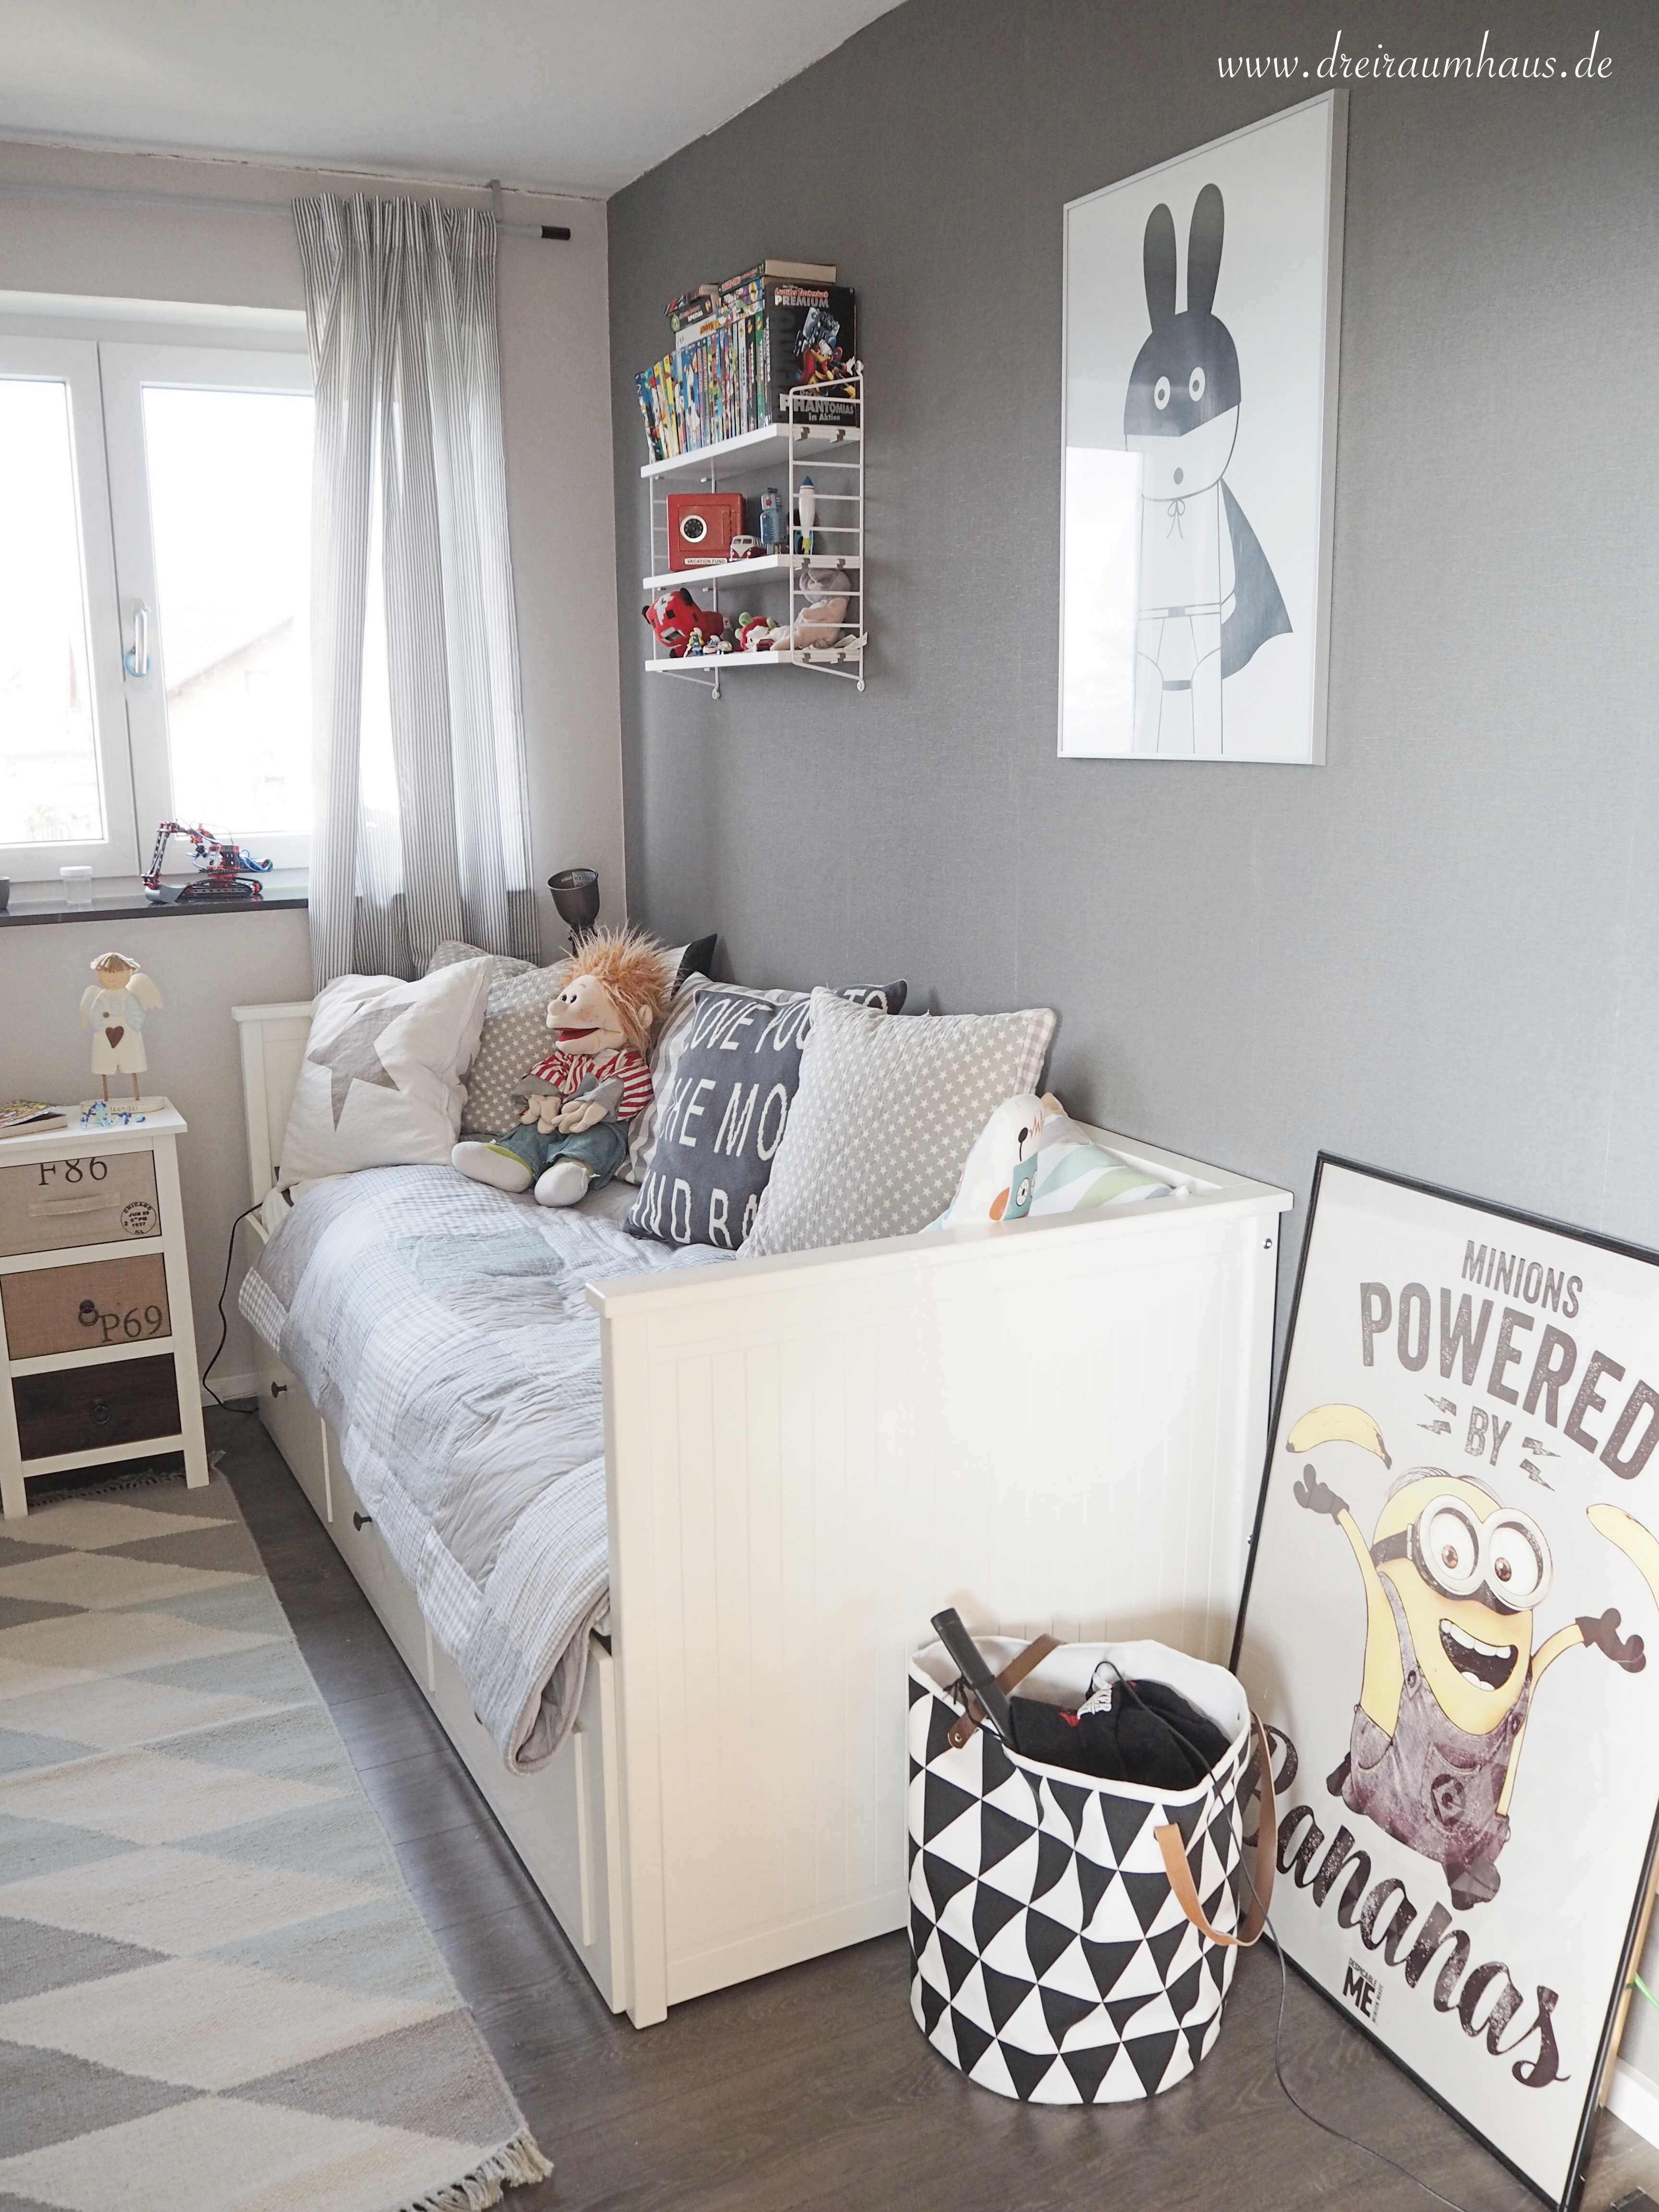 23 Wundervoll Roomtour Schlafzimmer Ikea